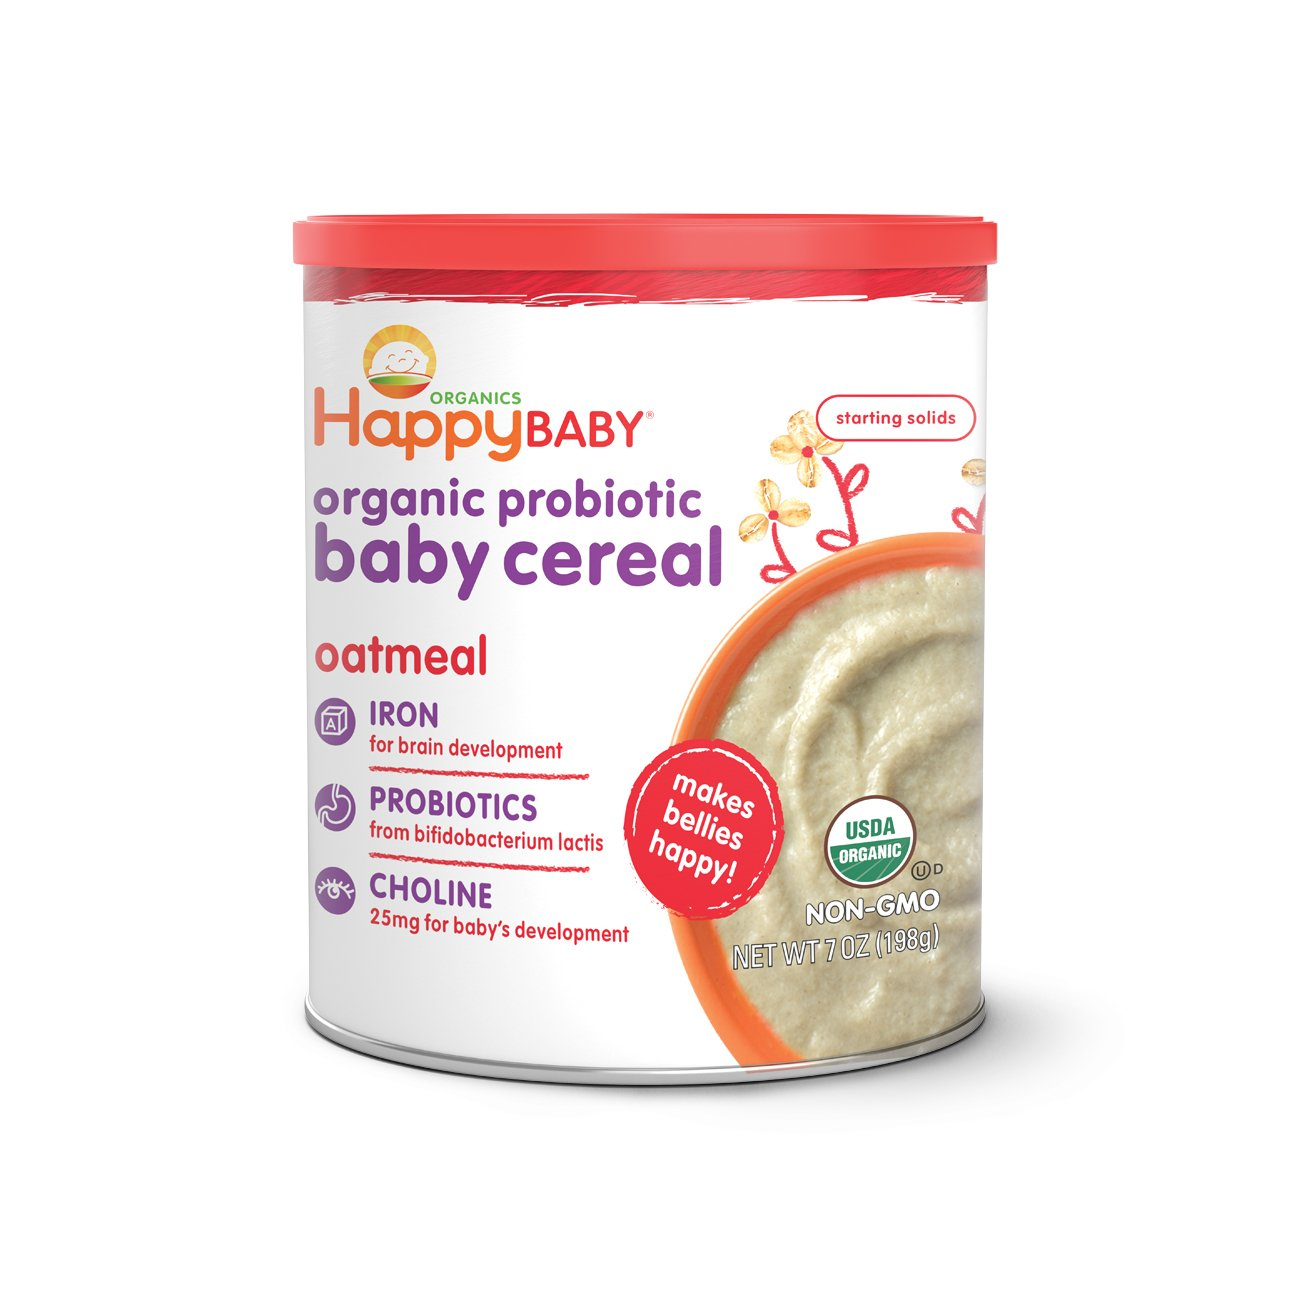 Happy Baby Organic Probiotic Baby Cereal with Choline Oatmeal, 7 Ounce Canister (Pack of 6) Organic Baby Cereal with Iron & Choline to Support Baby's Brain Development, a Great First Food HAPPYBABY 00108